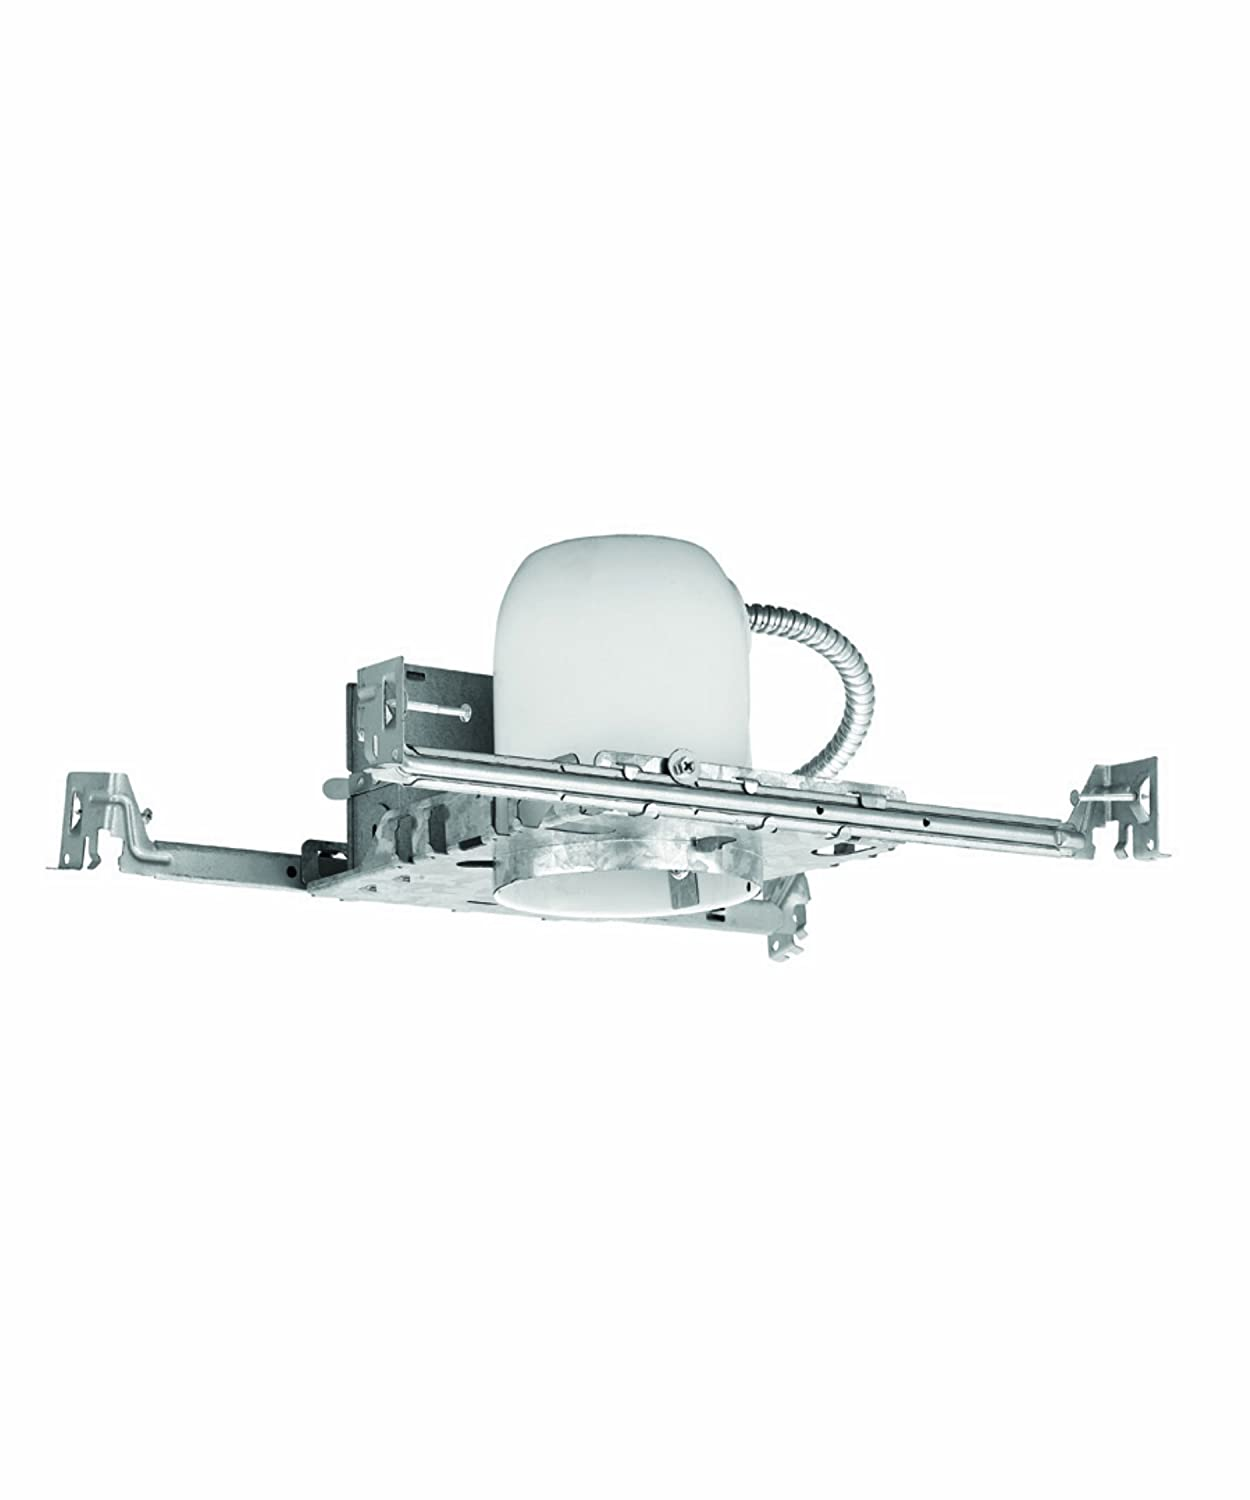 WAC Lighting R400SNA 4-Inch New Construction Housing Non Ic-Air Tight Recessed Lighting R-400S-N-A